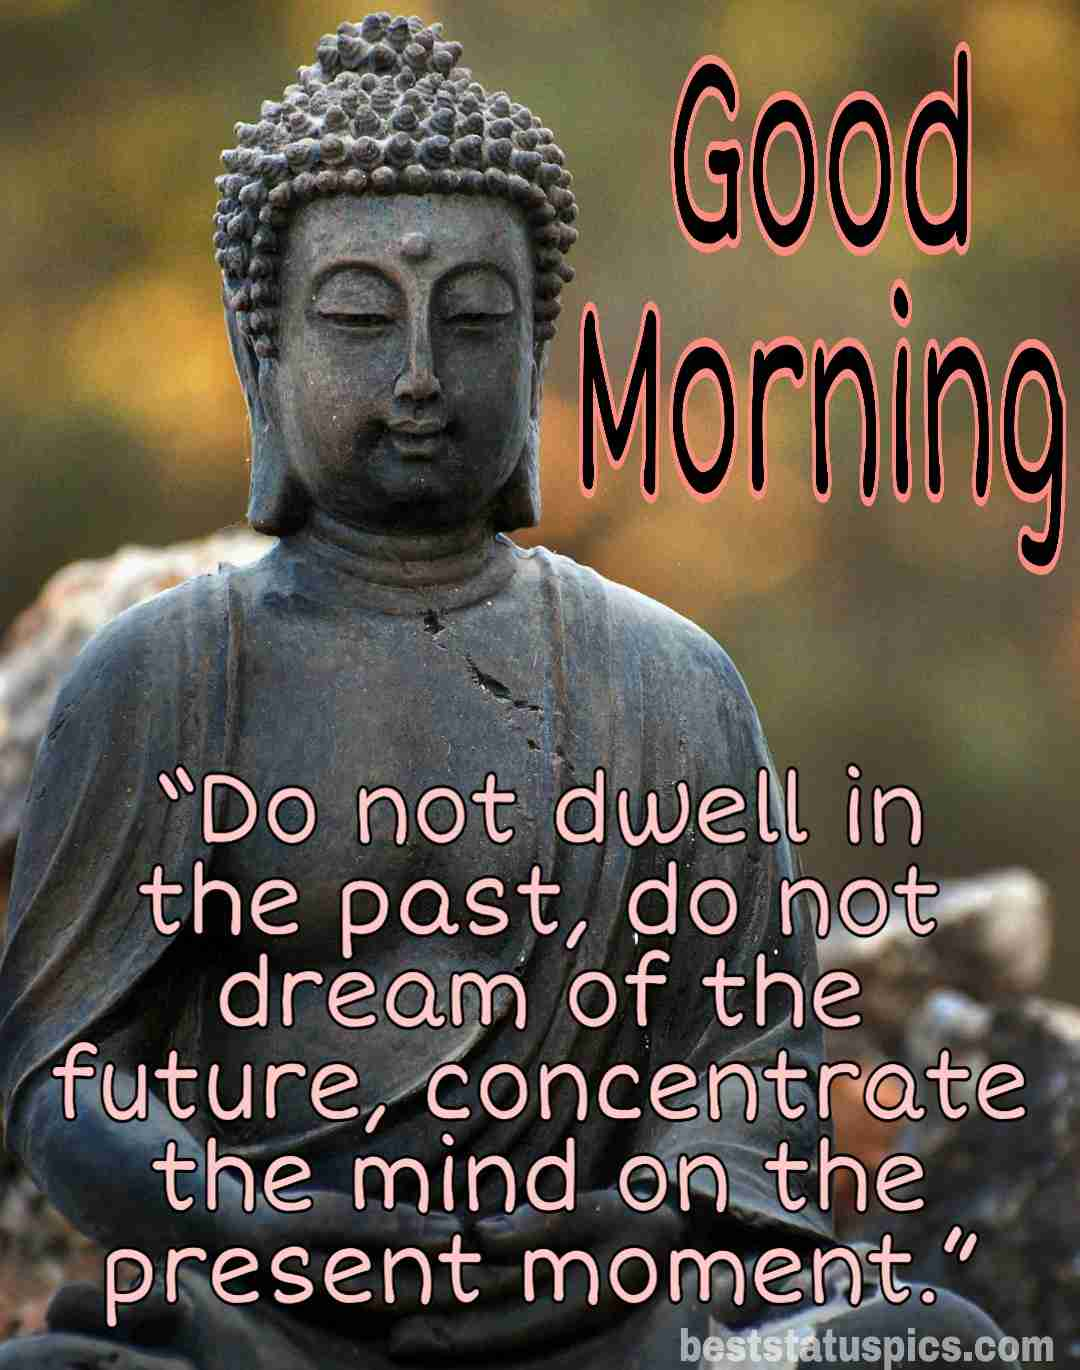 Buddha Good Morning Quotes With Images | Best Status Pics